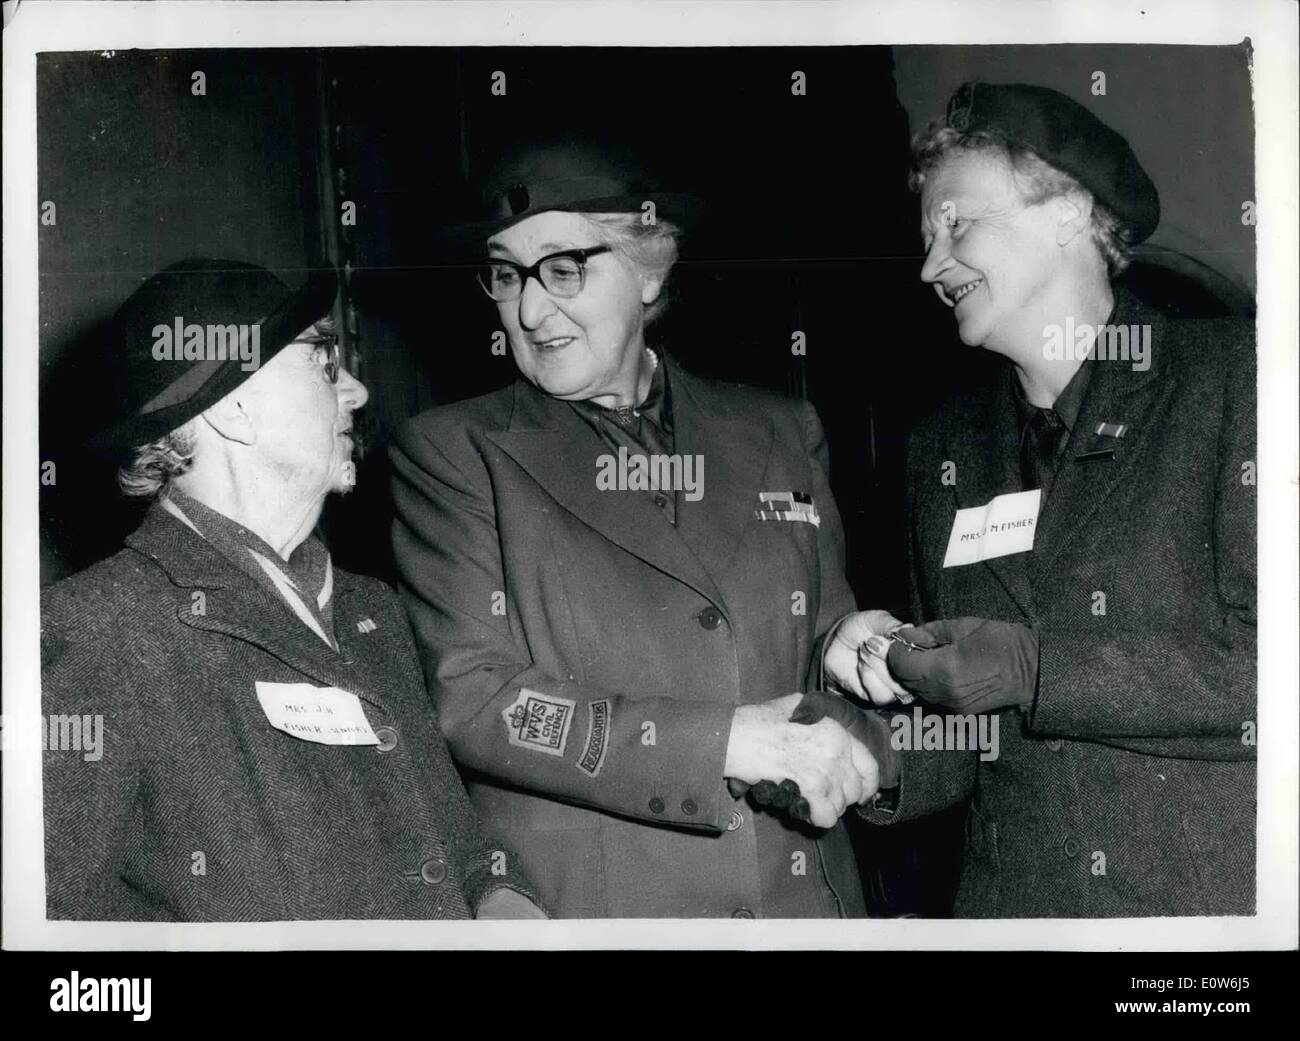 Oct. 10, 1961 - WVS long service medals presented: The Dowager Marchioness of reading, Chairman of the Women's - Stock Image